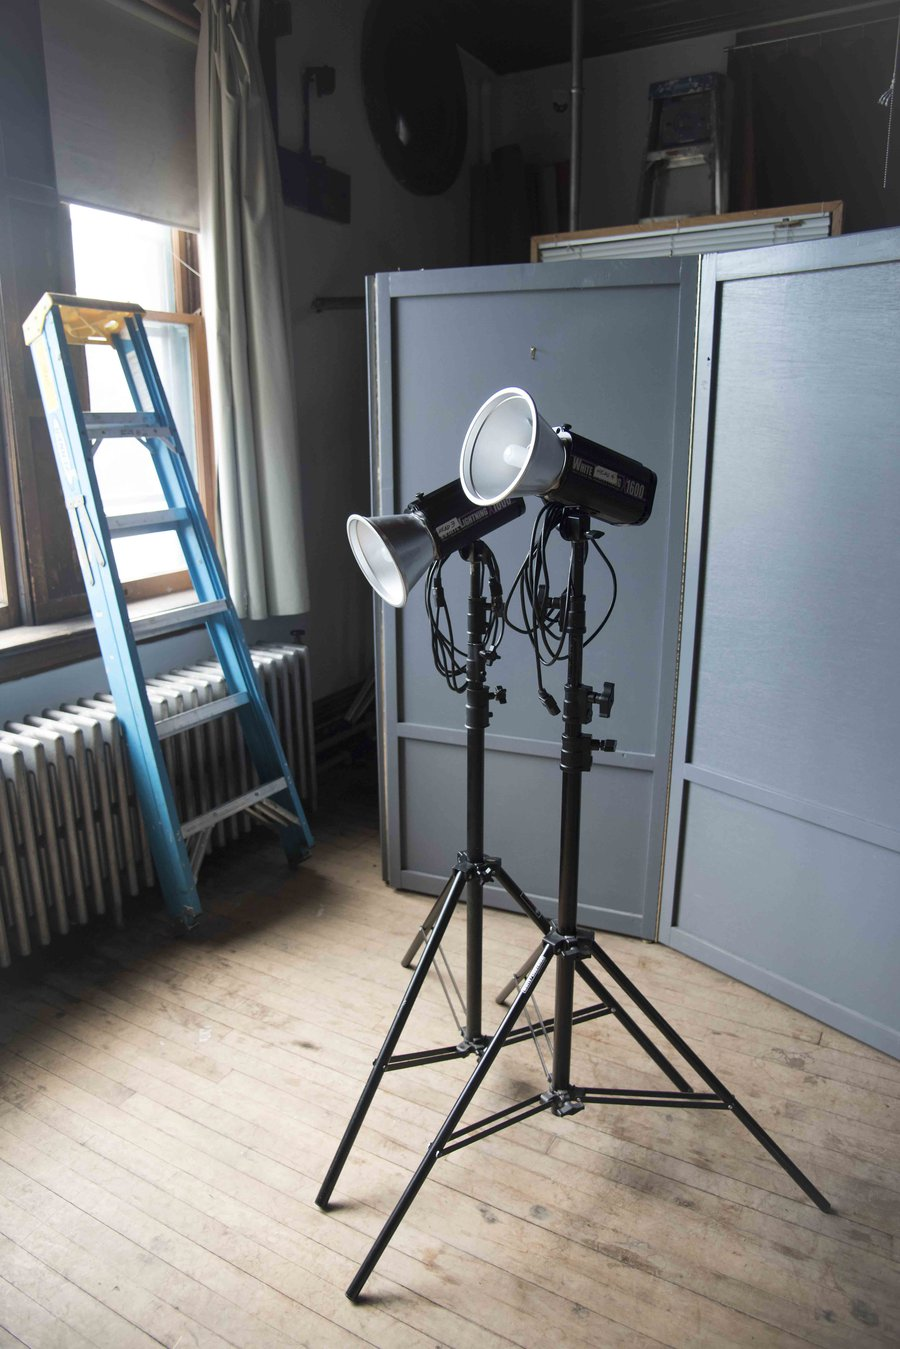 Object Photography (Studio Lighting) image